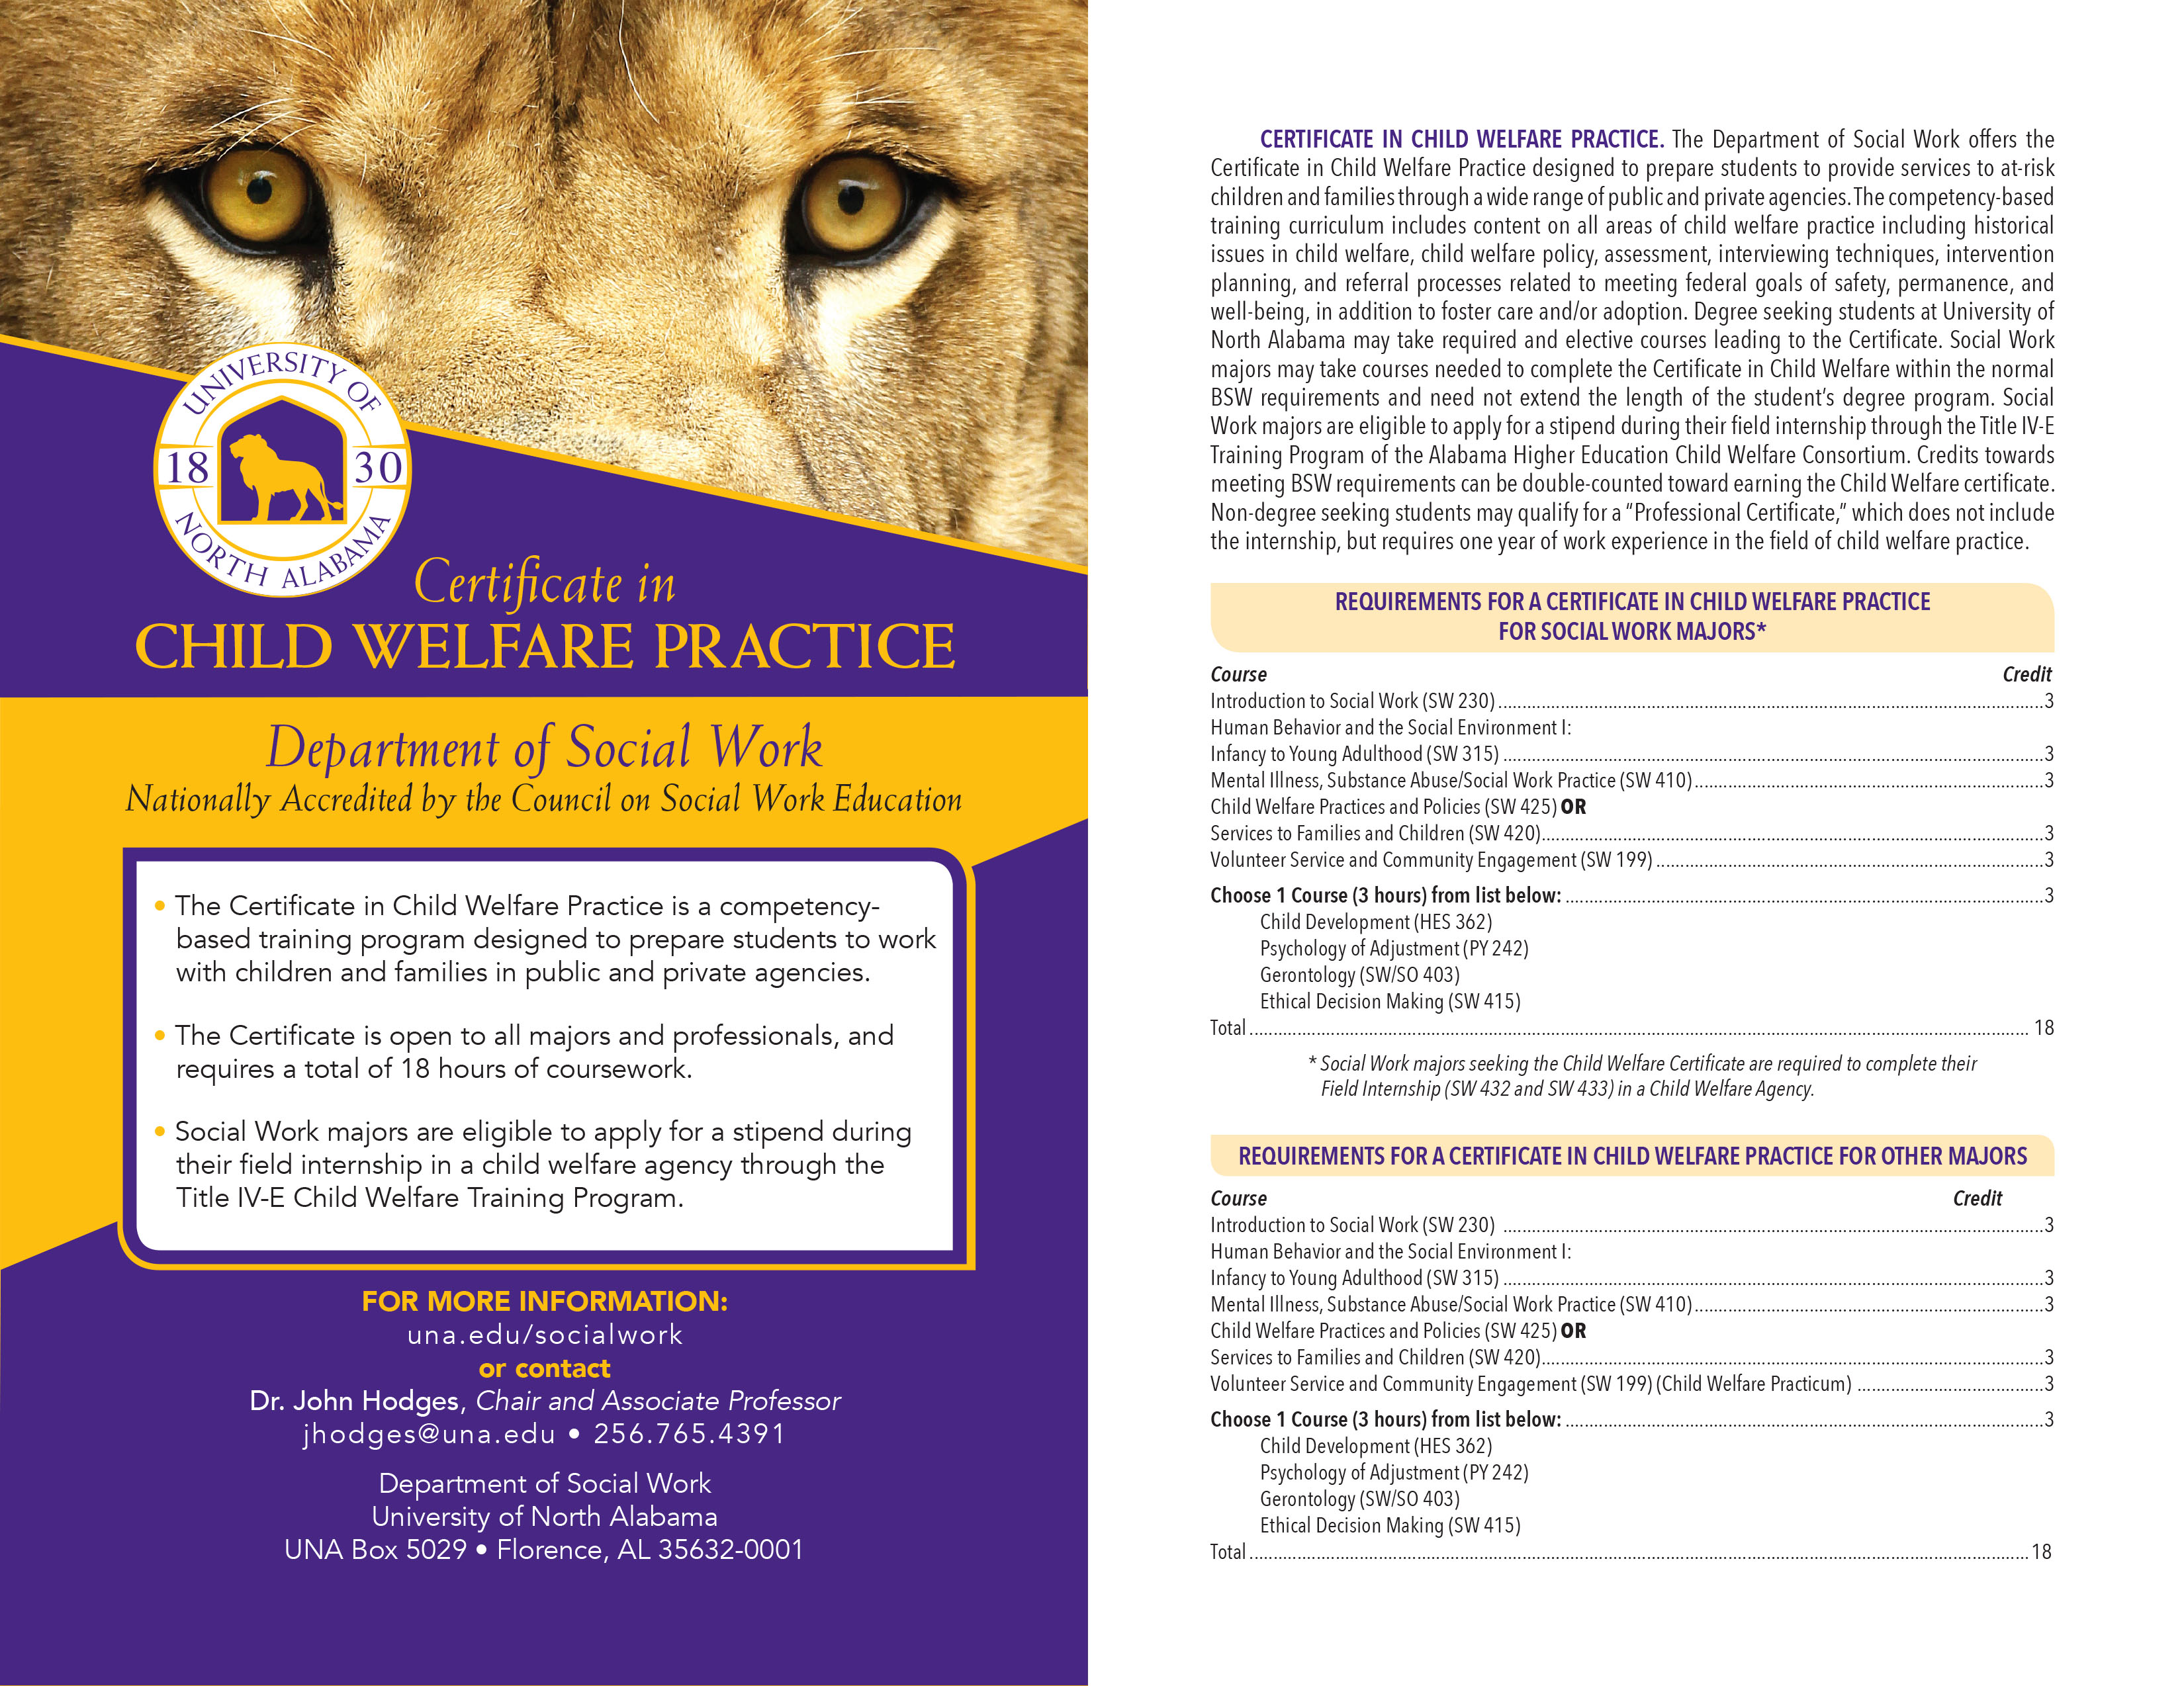 Child welfare certificate university of north alabama click here to see our brochure xflitez Choice Image